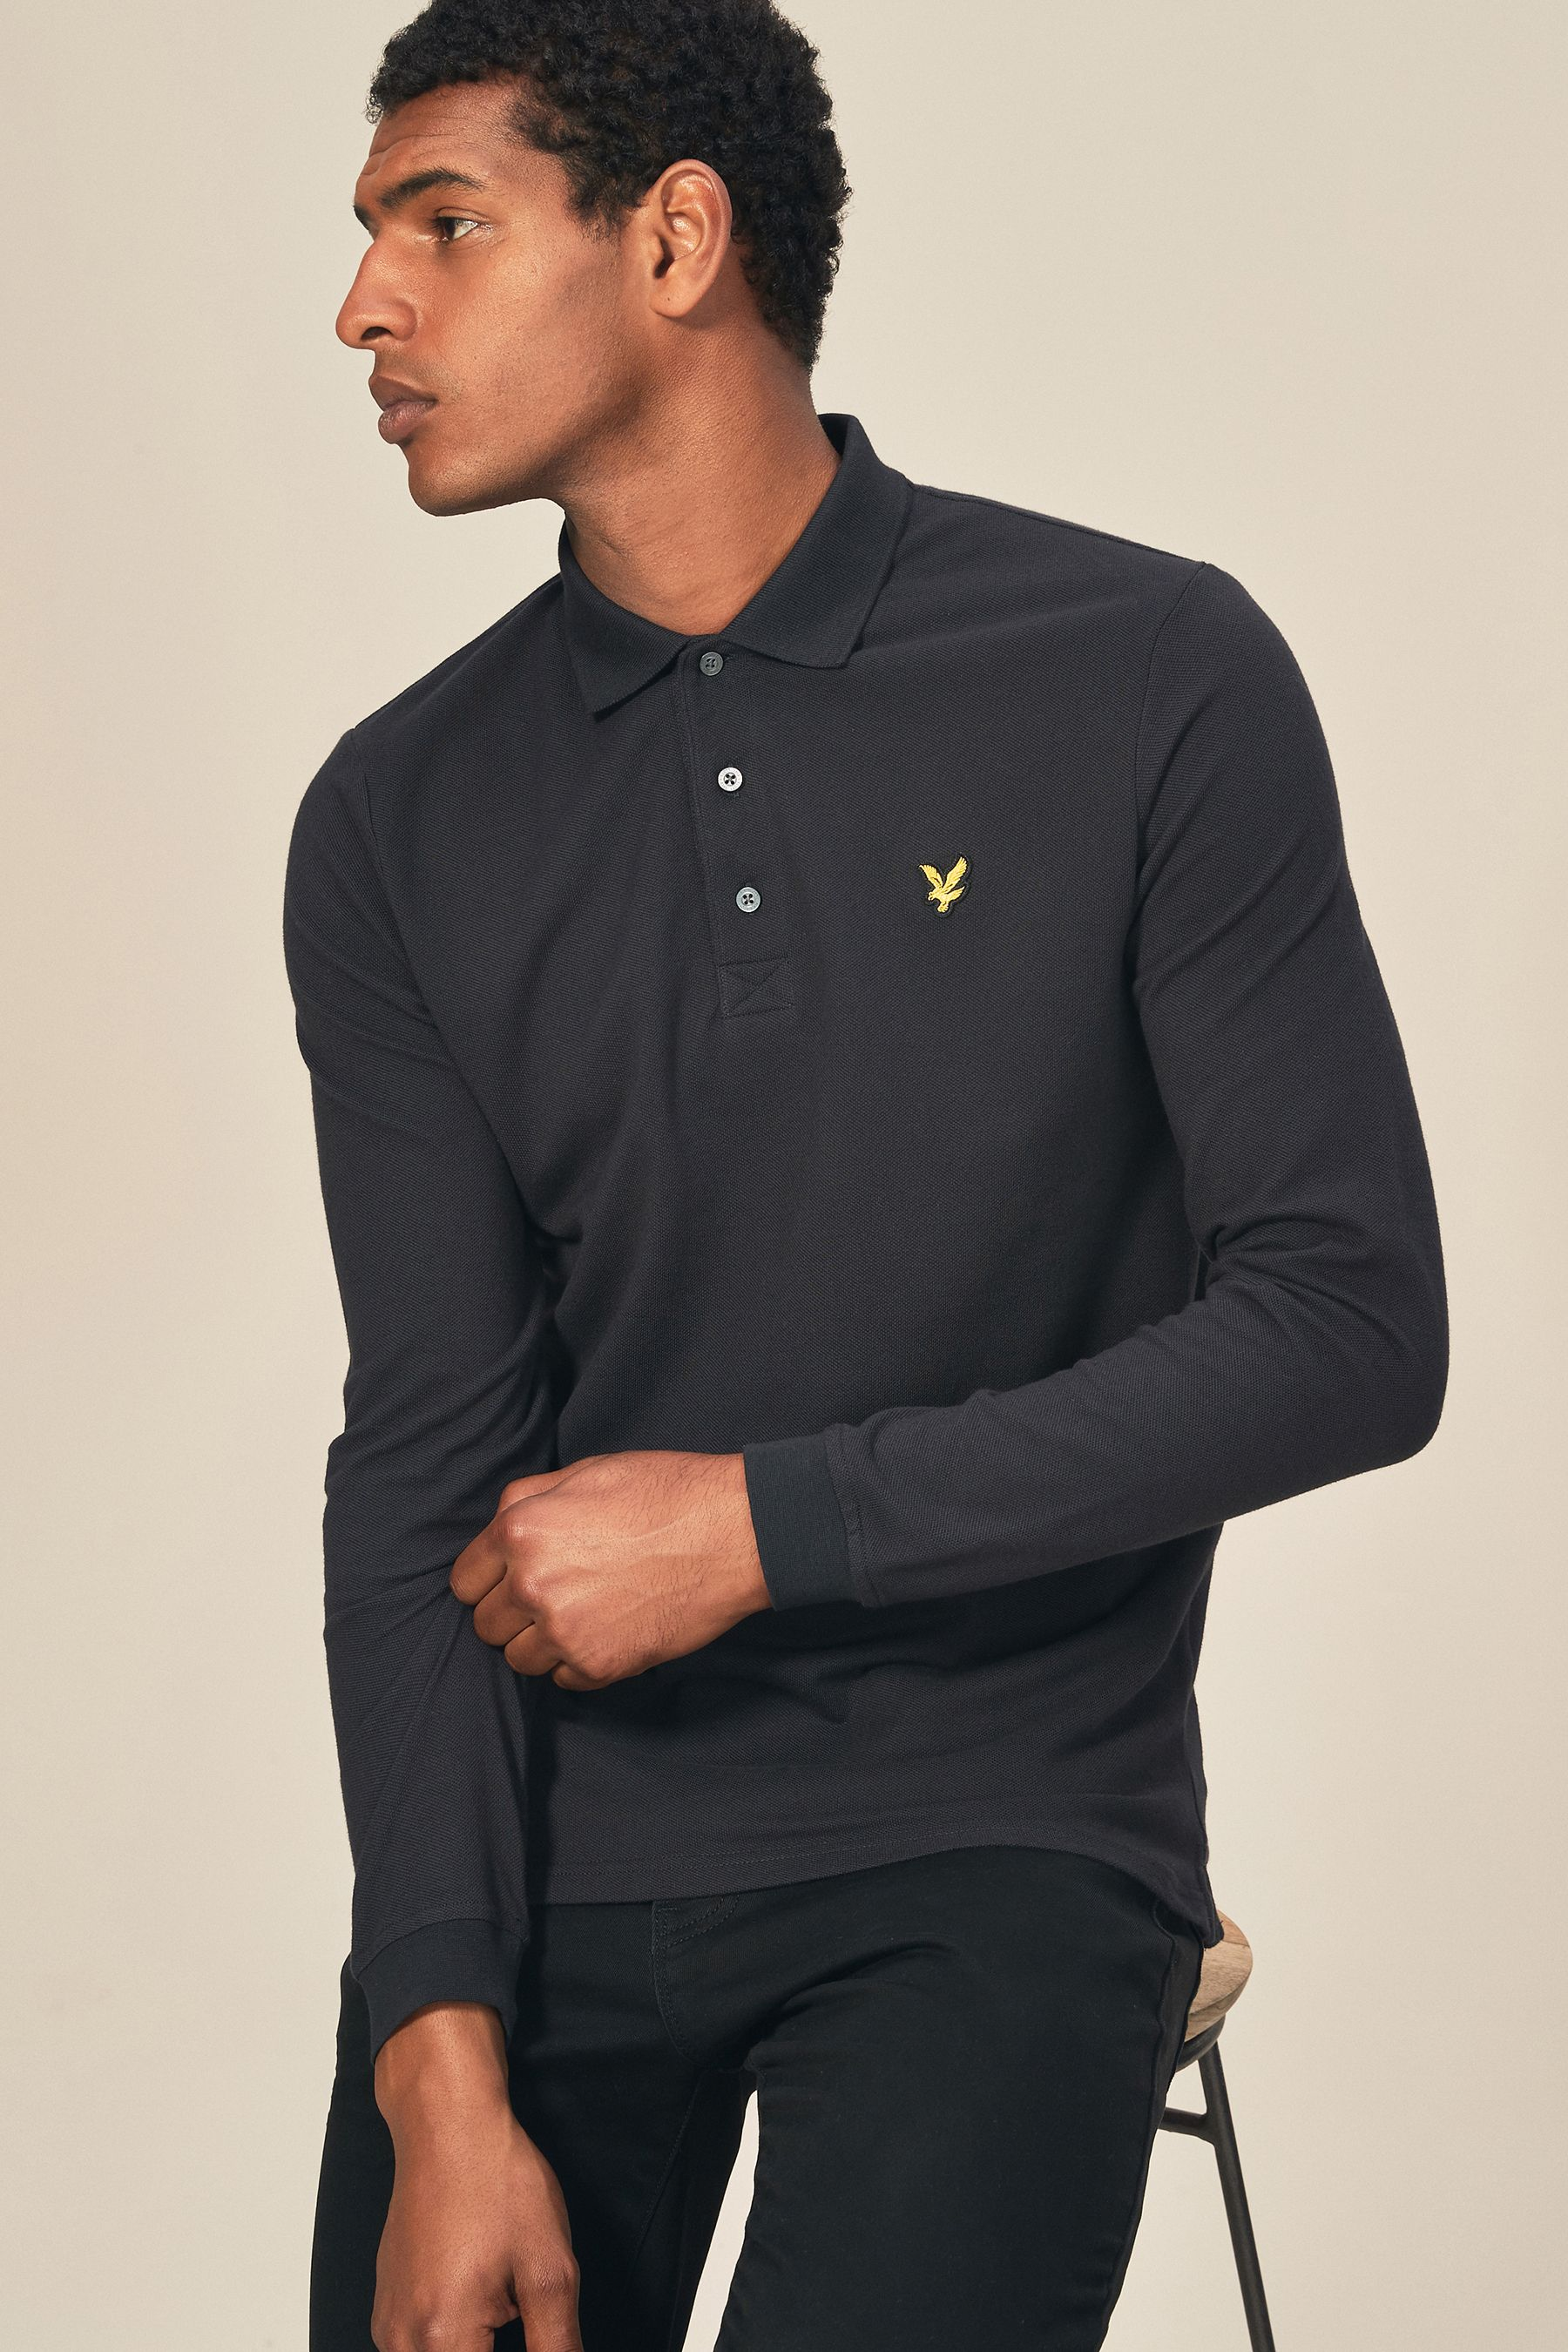 rock-bottom price the best shades of Mens Lyle & Scott Long Sleeve Poloshirt - Grey in 2019 ...